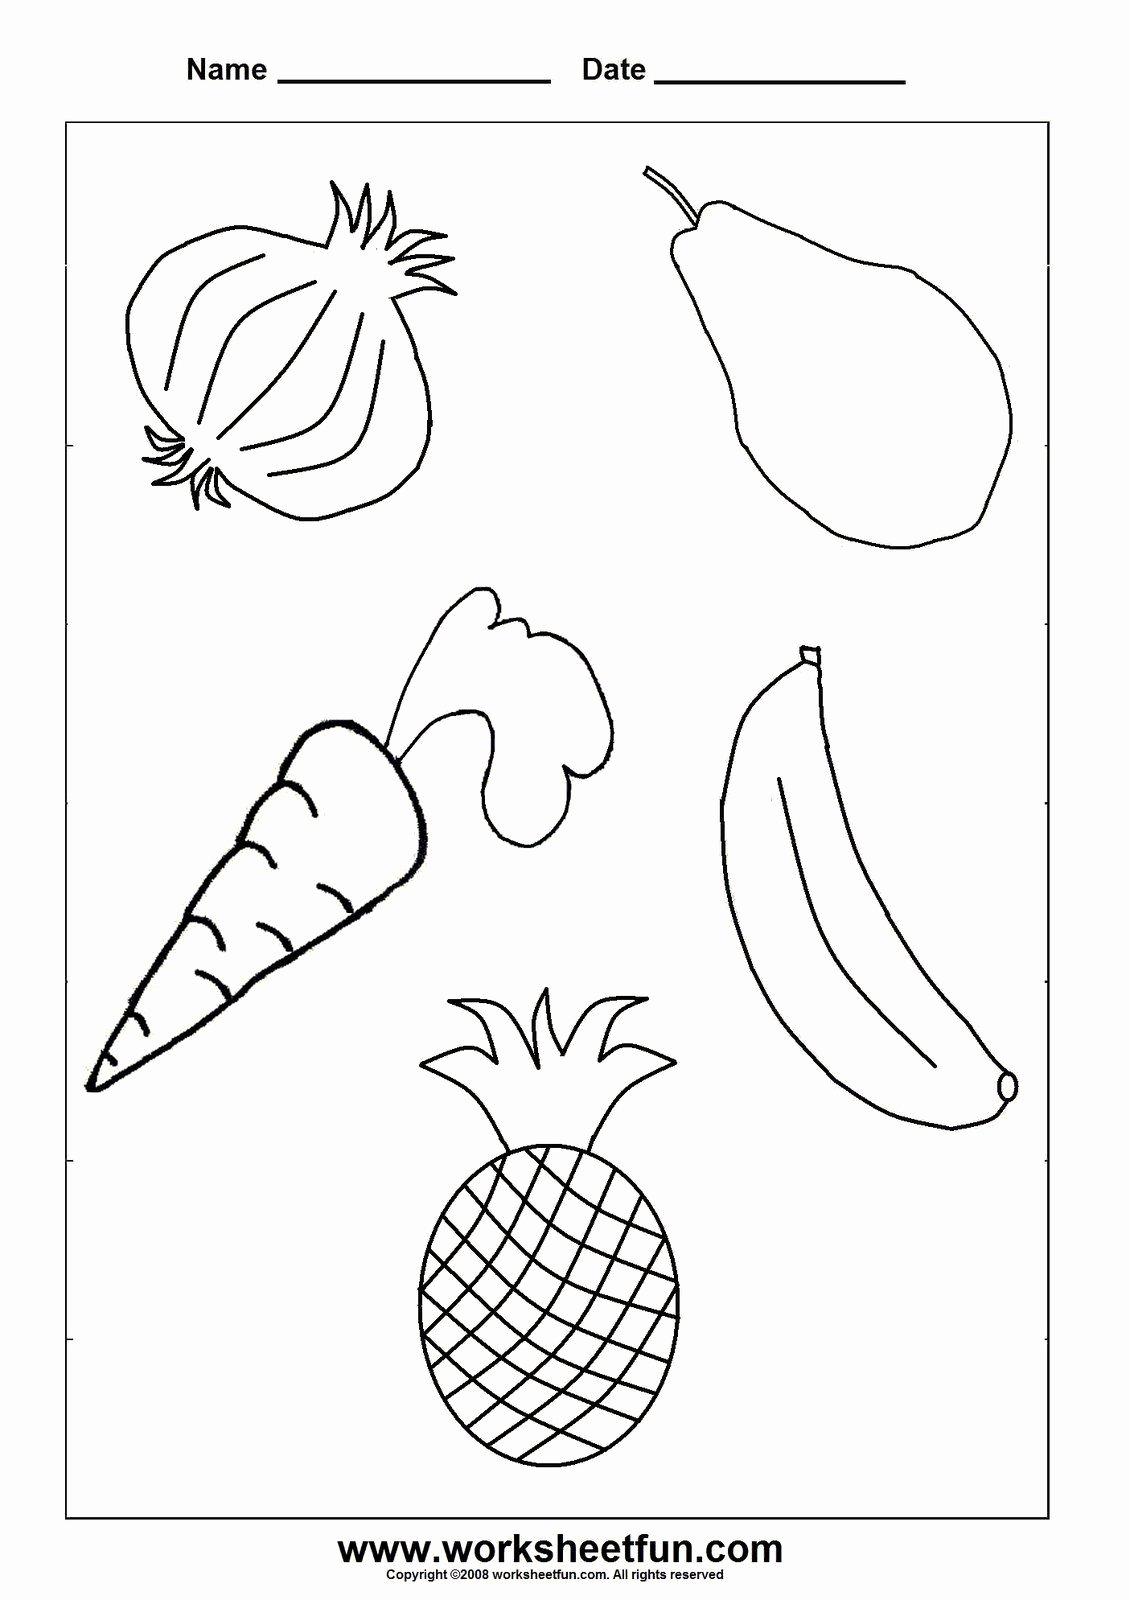 Fruits Worksheets for Preschoolers Beautiful Worksheetfun Free Printable Worksheets